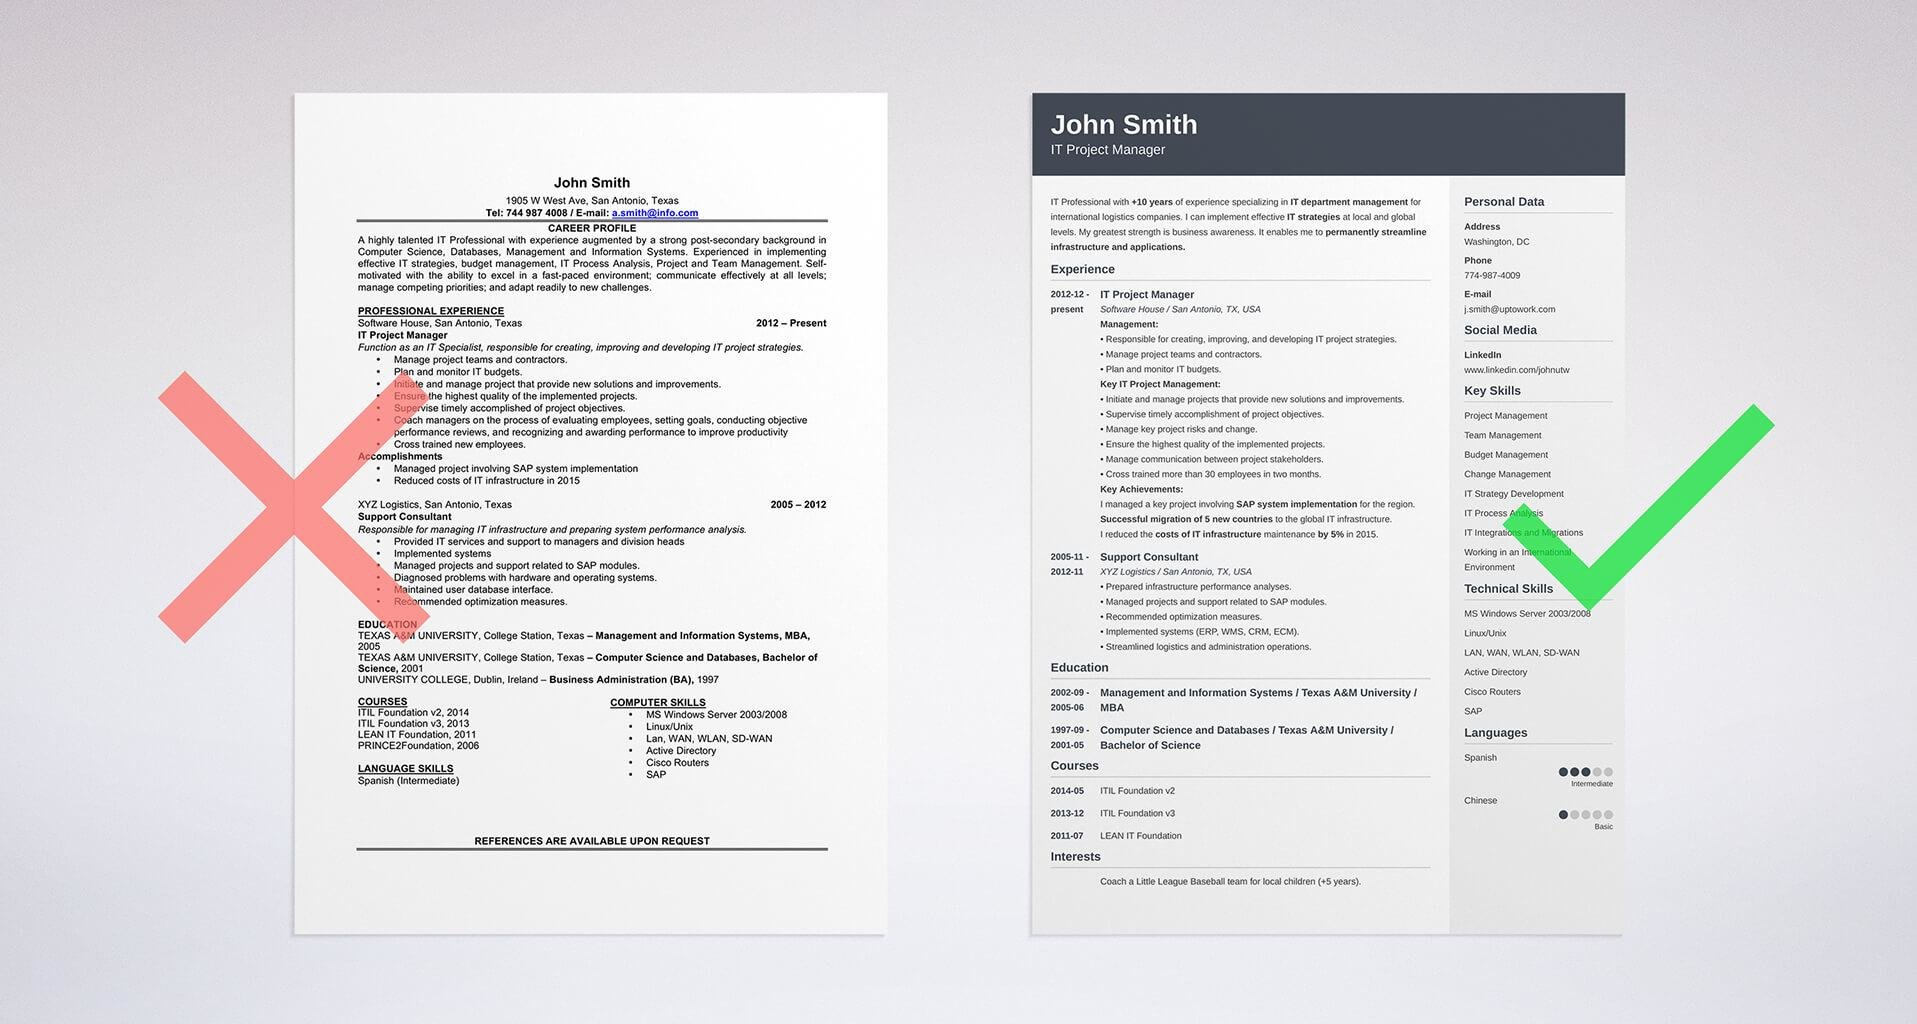 3 resume formats how to choose the best one examples